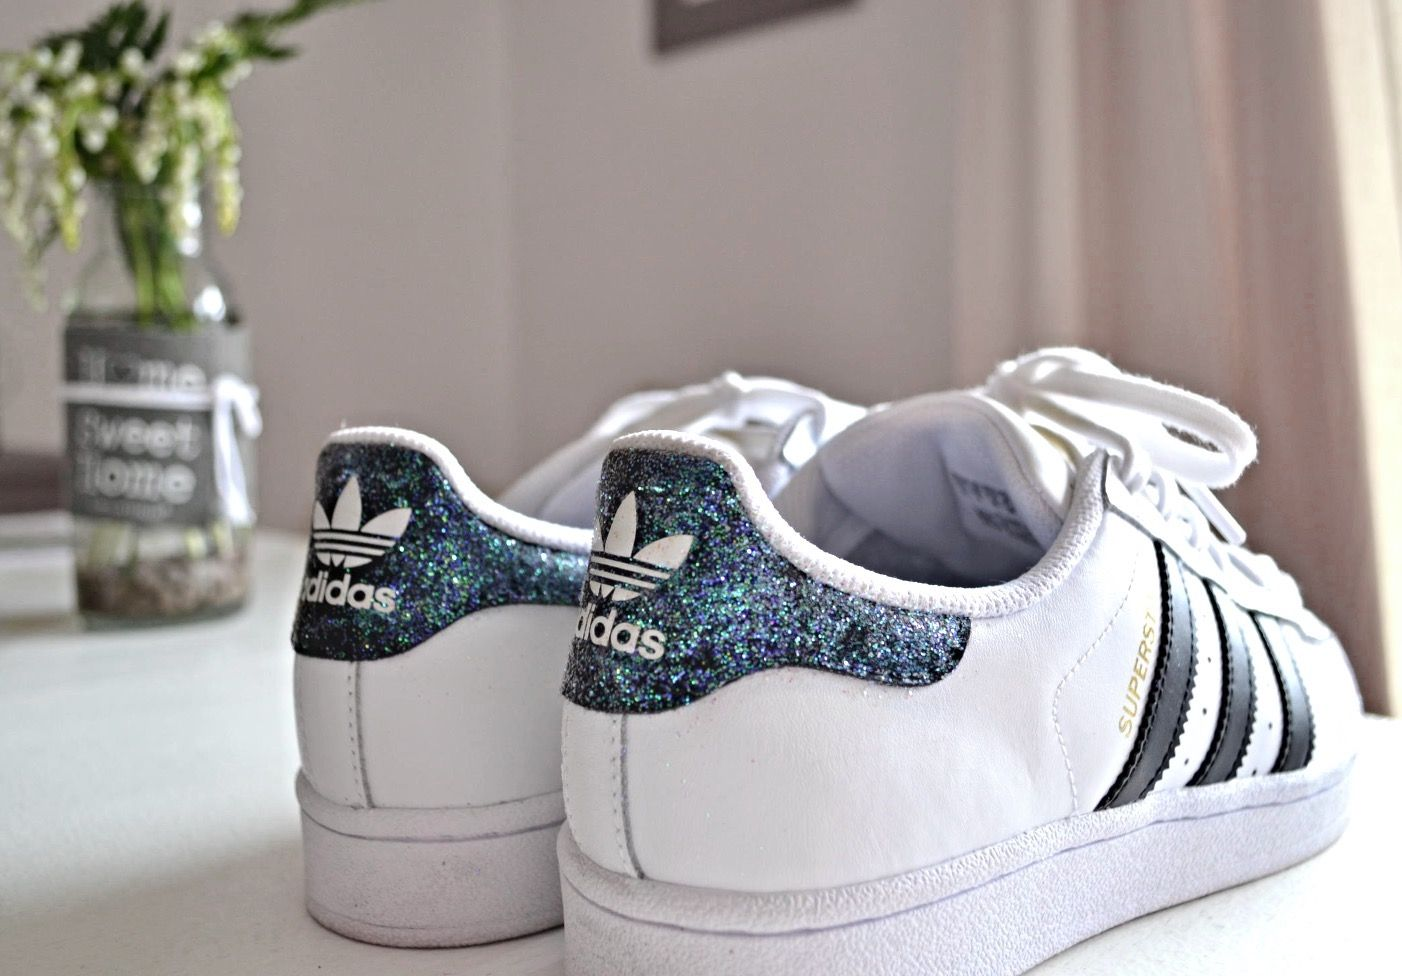 best loved 2f4ef 4e4e2 Nouveau post sur le blog   comment customiser ses baskets avec des  paillettes